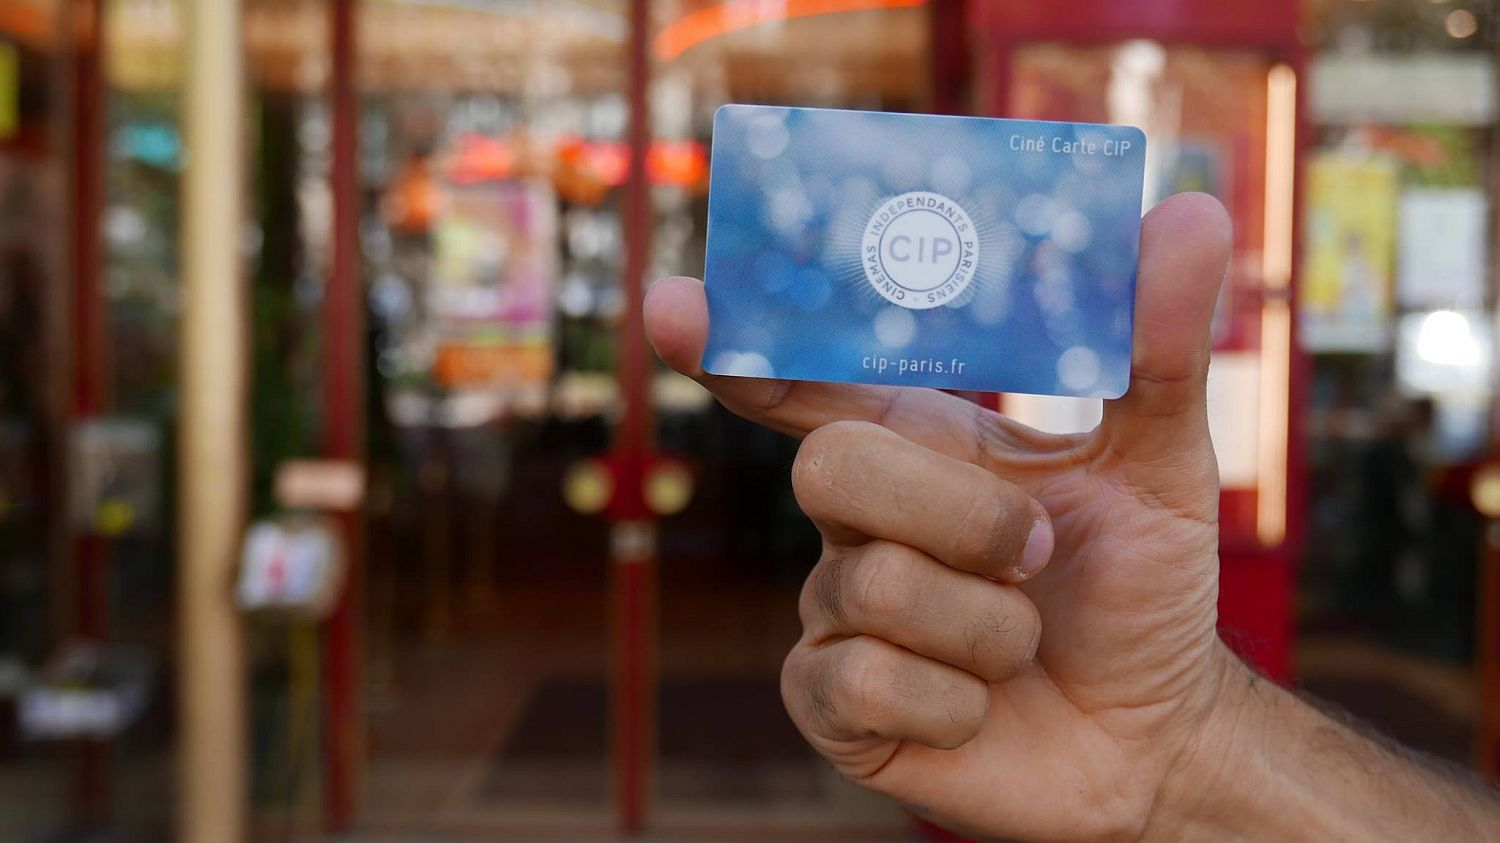 Carte Accord Tarif.Cine Carte Cip La Nouvelle Carte Prepayee Des Cinemas Independants